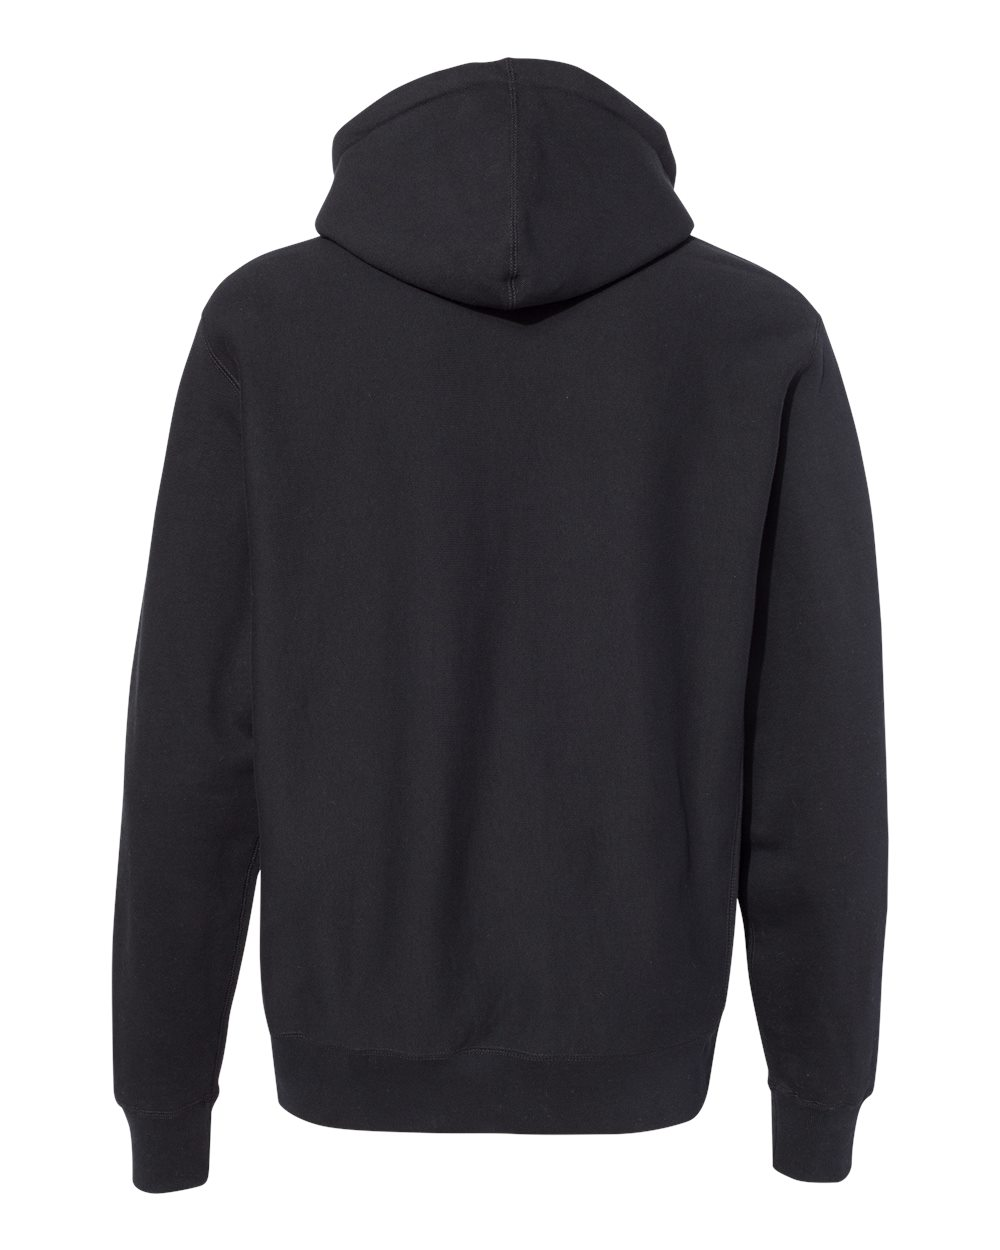 Independent-Trading-Co-Mens-Premium-Heavyweight-Cross-Grain-Hoodie-IND5000P thumbnail 10